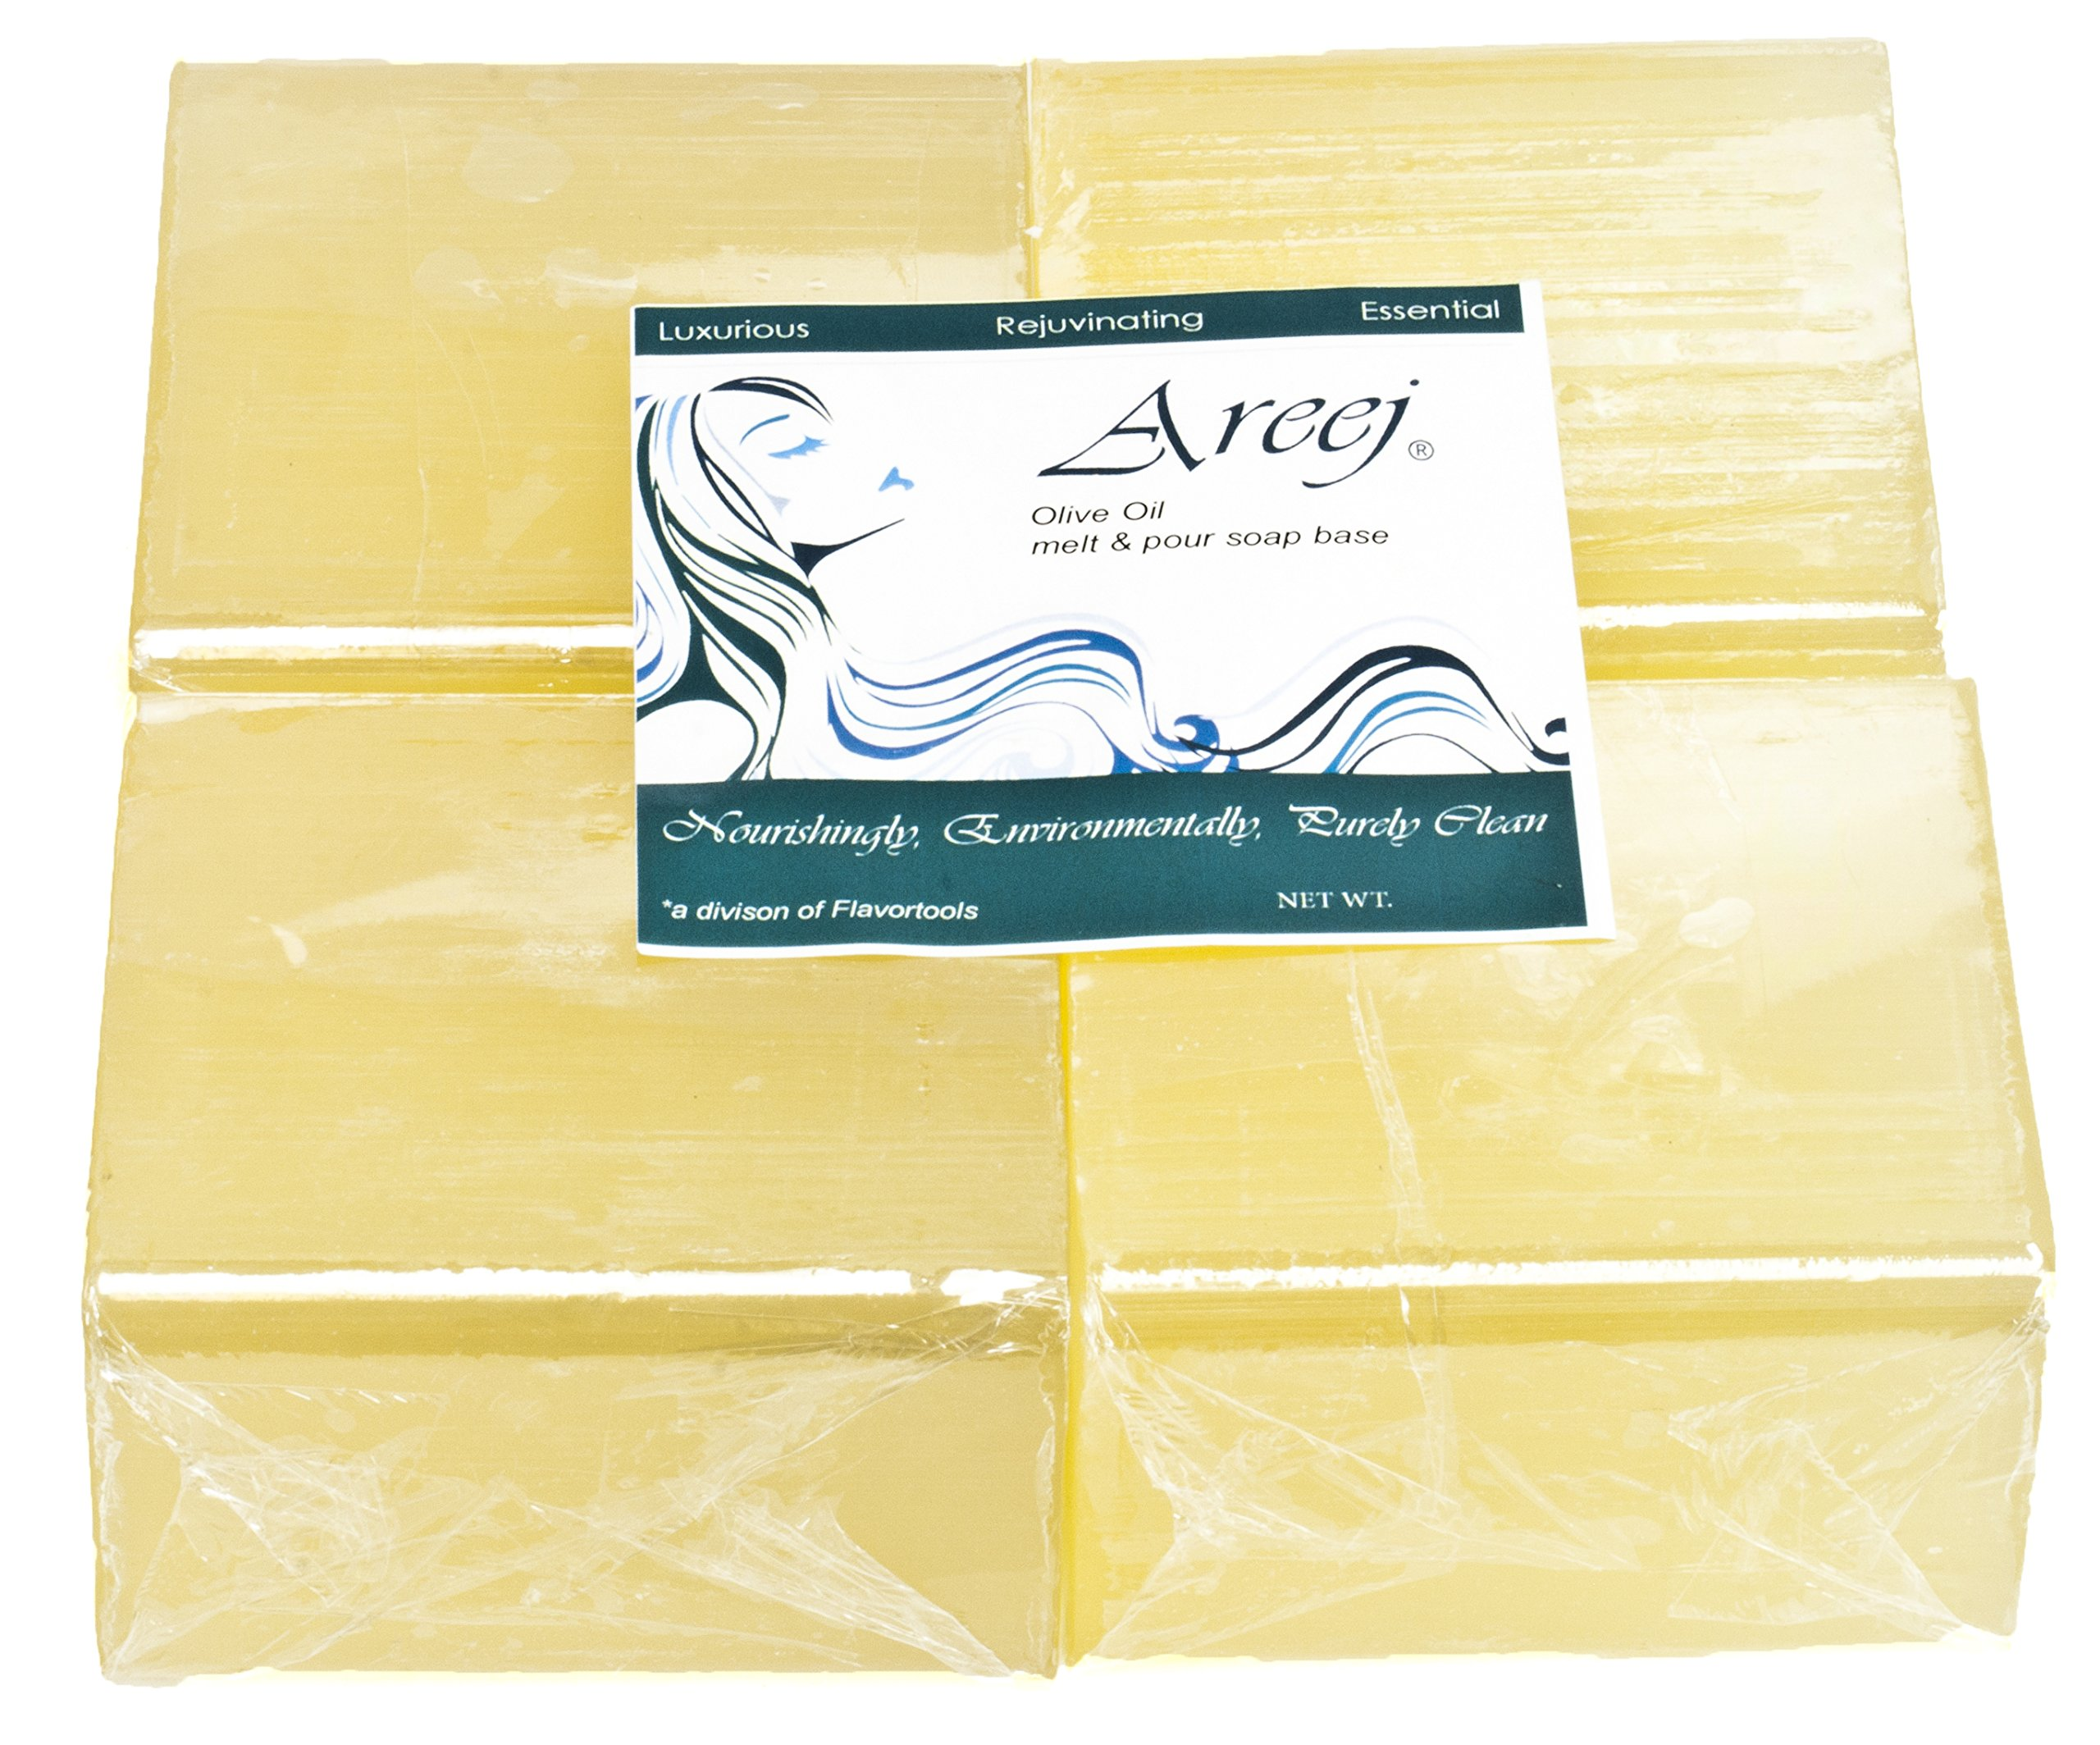 Areej Hypo-Allergenic Biodegradable Olive Oil Soap Base made with 100% Pure Natural Glycerin - 2 Pounds